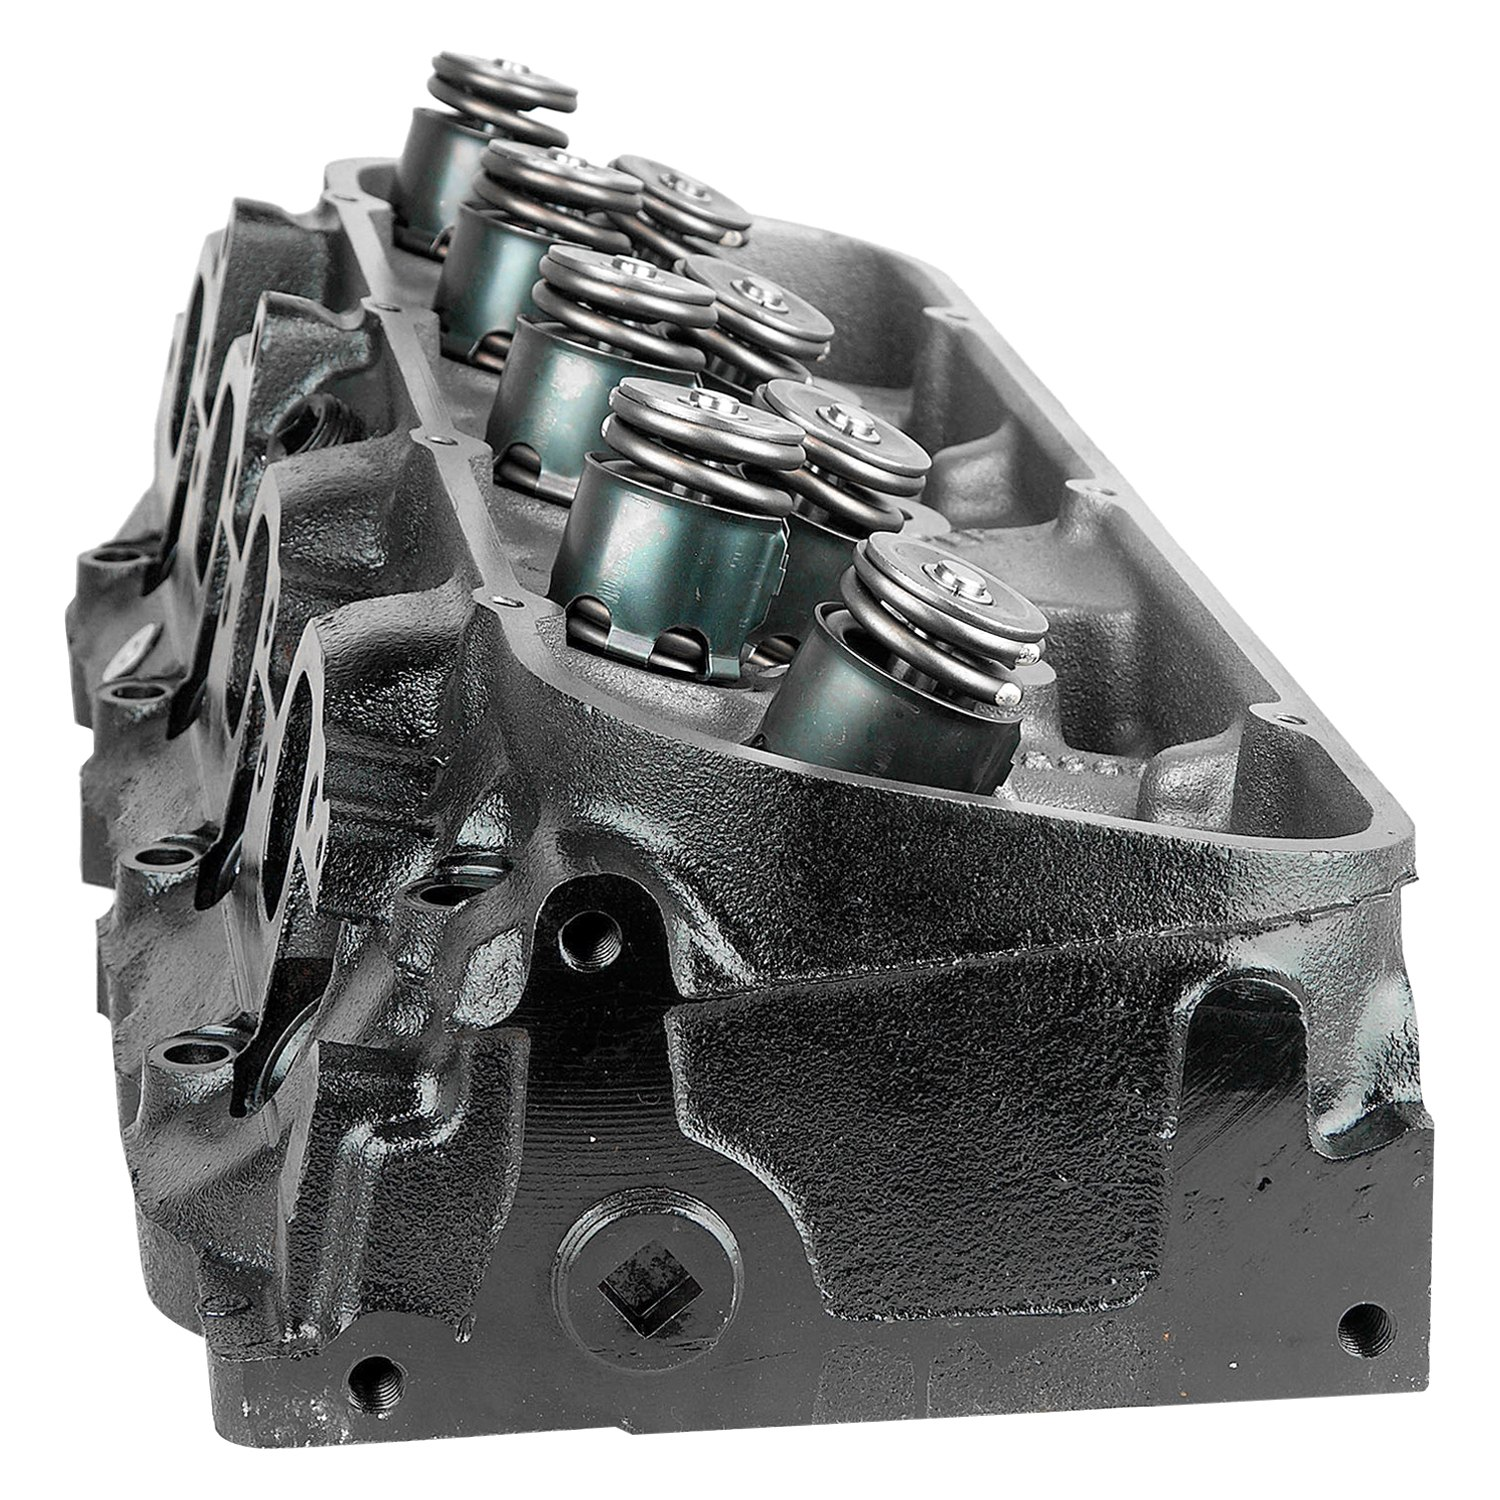 Replace® 2CF3 - Passenger Side Remanufactured Iron Cylinder Head Assembled  with Valves & Springs